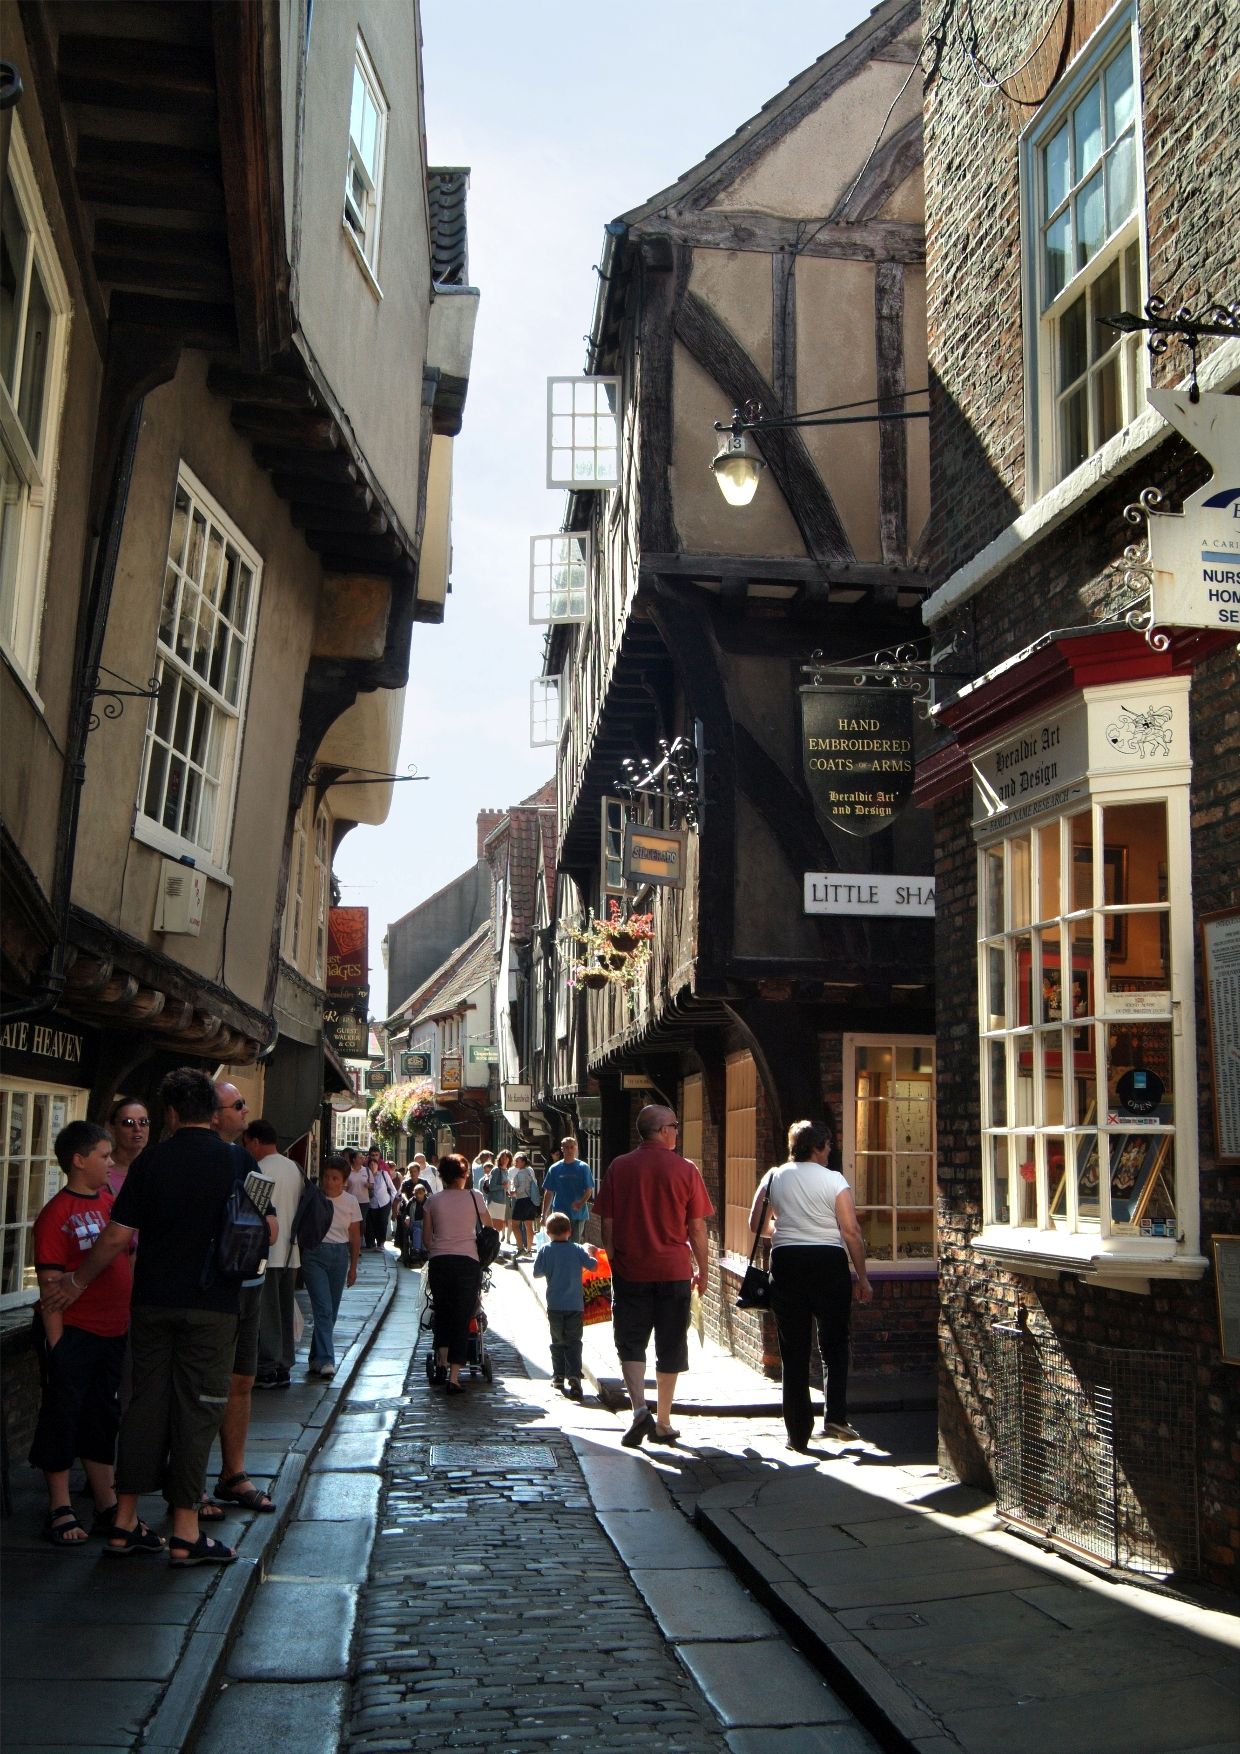 Shopping in the medieval shoppig street, the Shambles. Betty's © Jim Richardson/Visit York